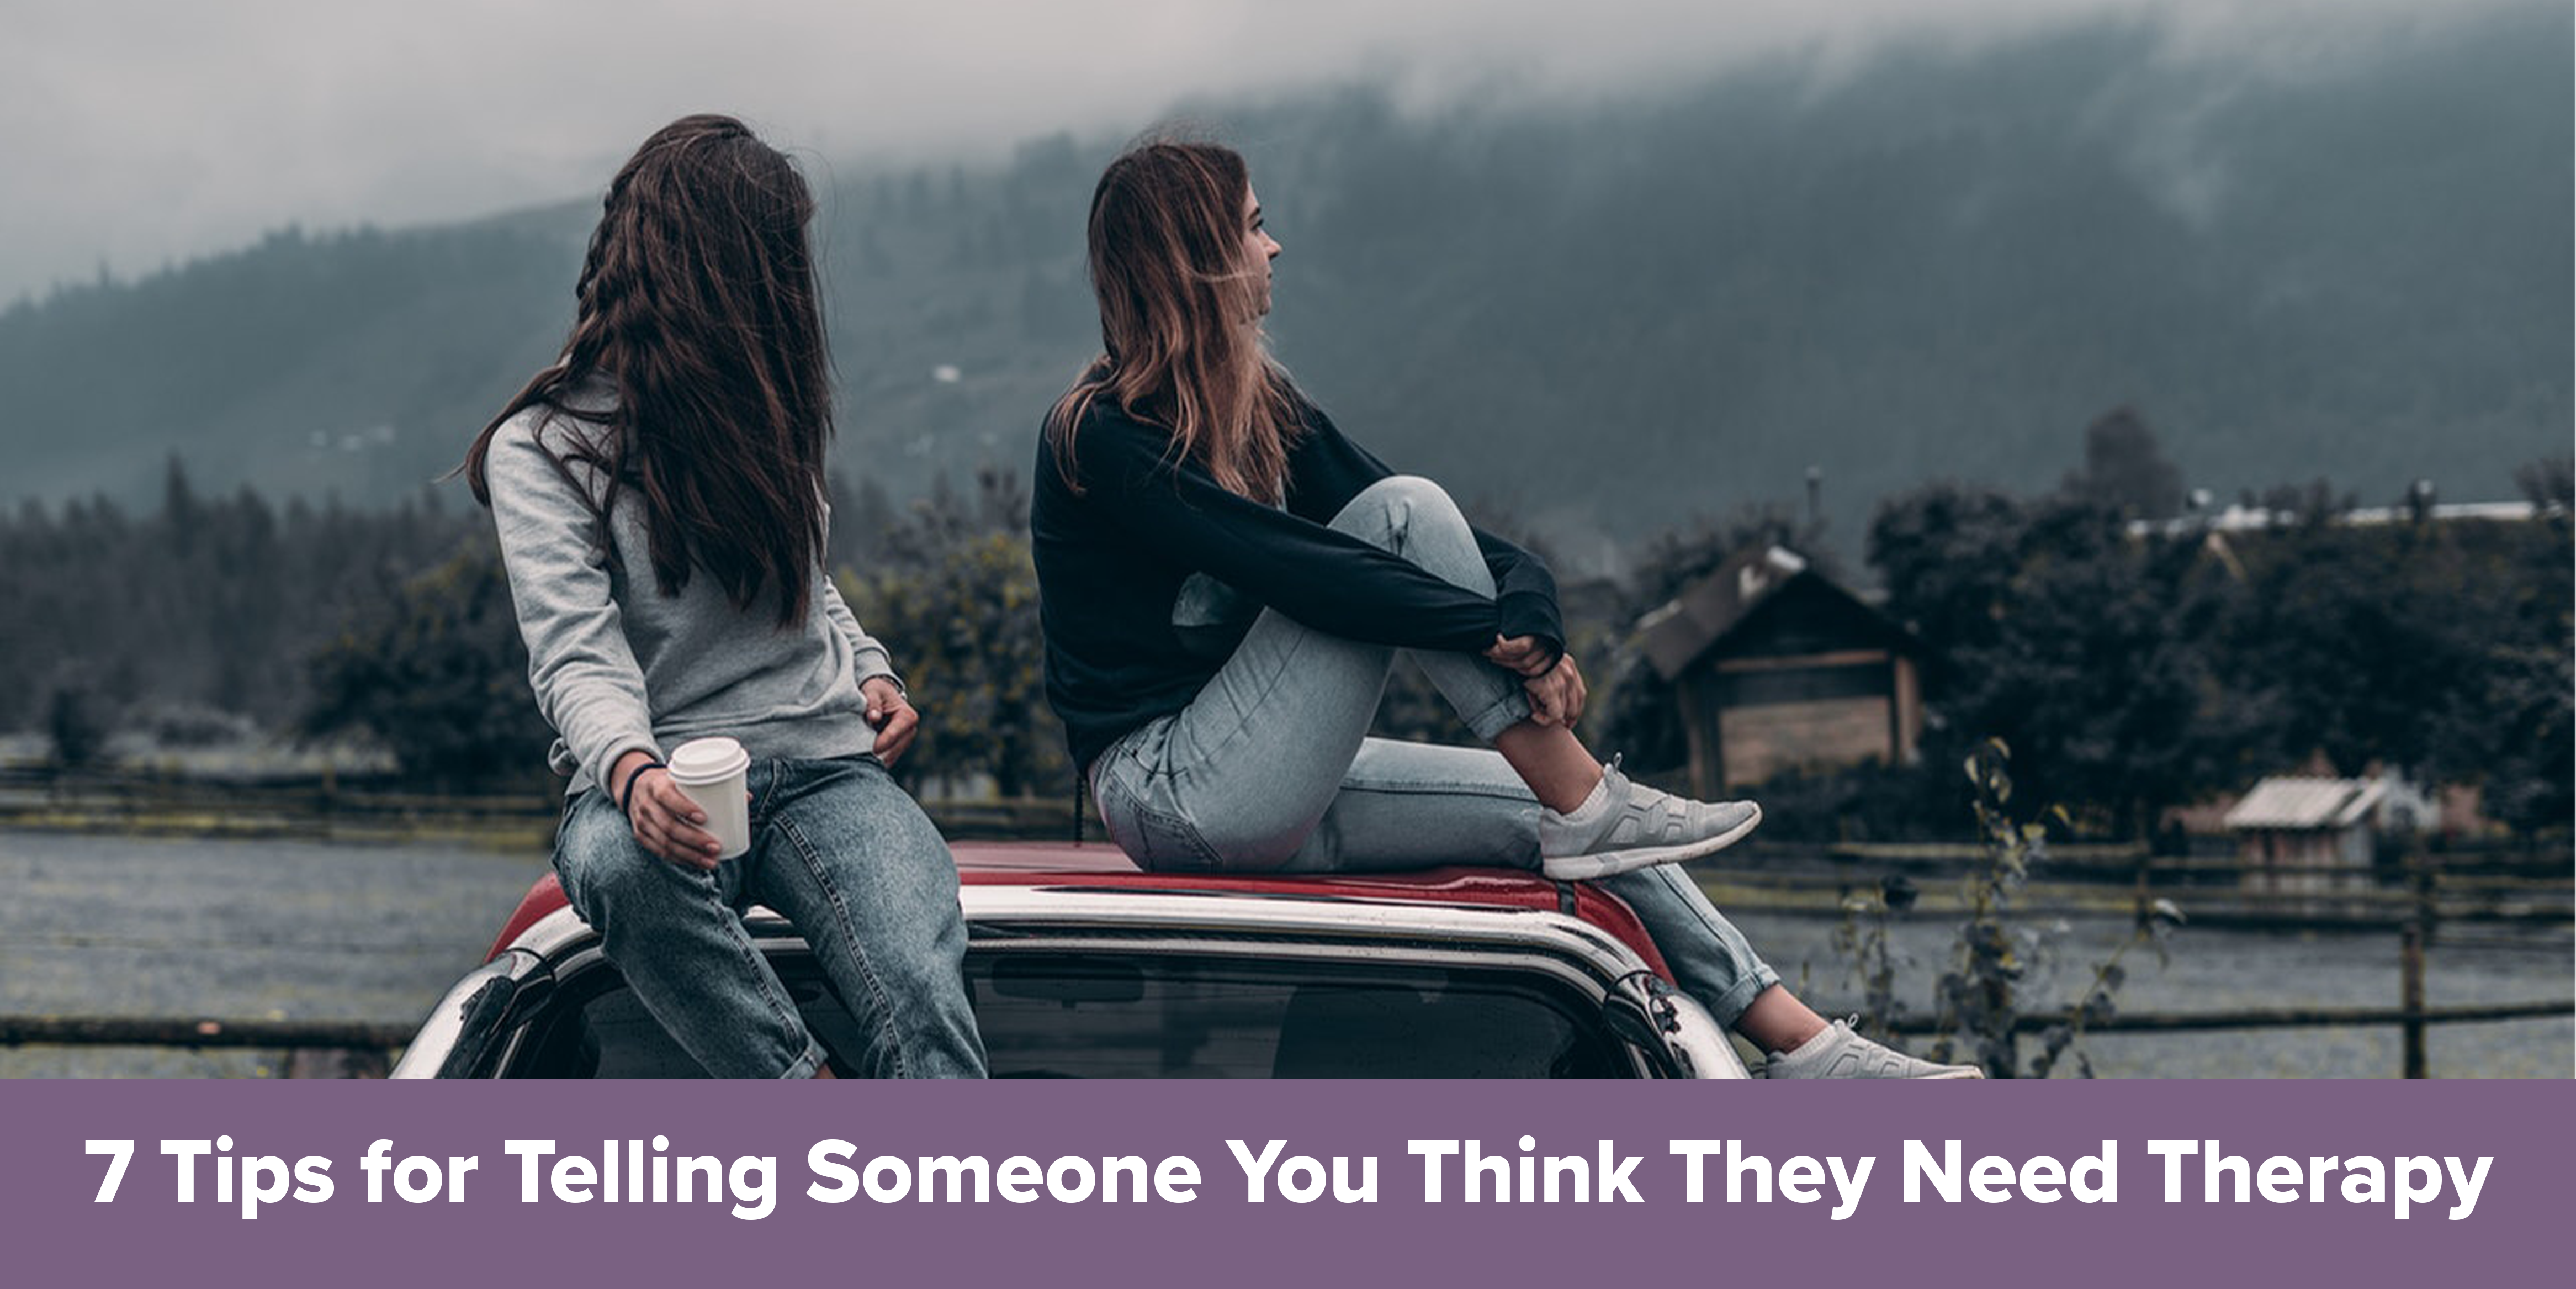 7 Tips for Telling Someone You Think They Need Therapy